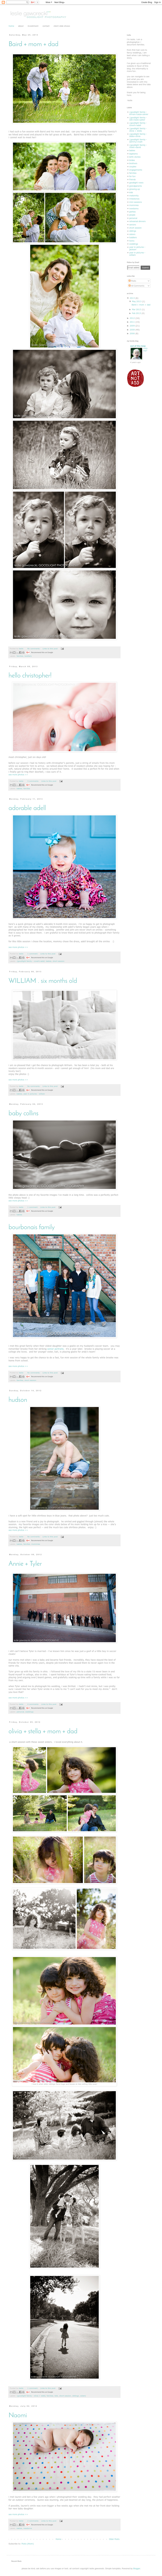 Goodlight Photography Competitors Revenue And Employees